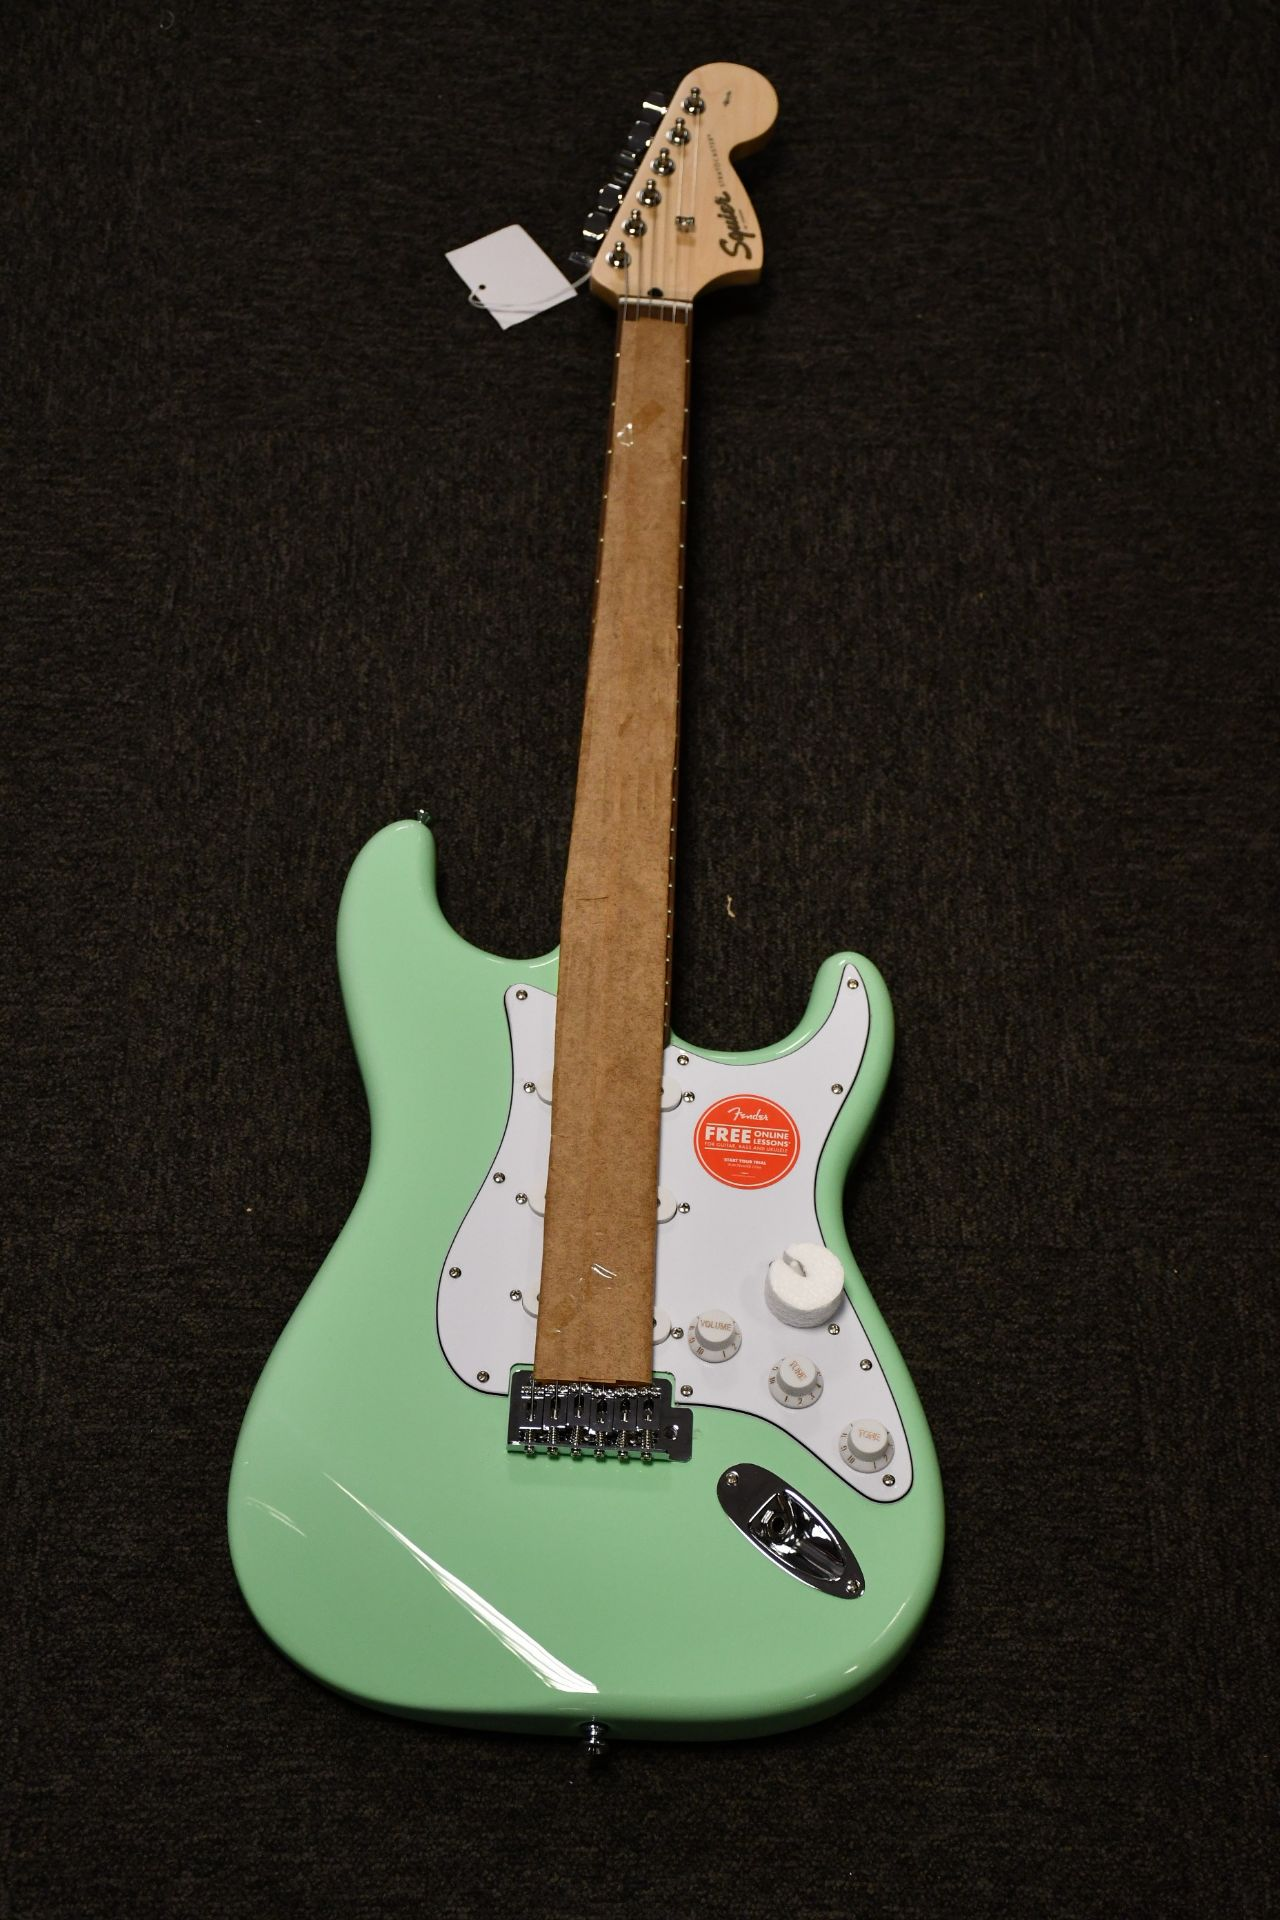 A boxed as new Fender Squier Affinity Series Stratocaster electric guitar in surf green.